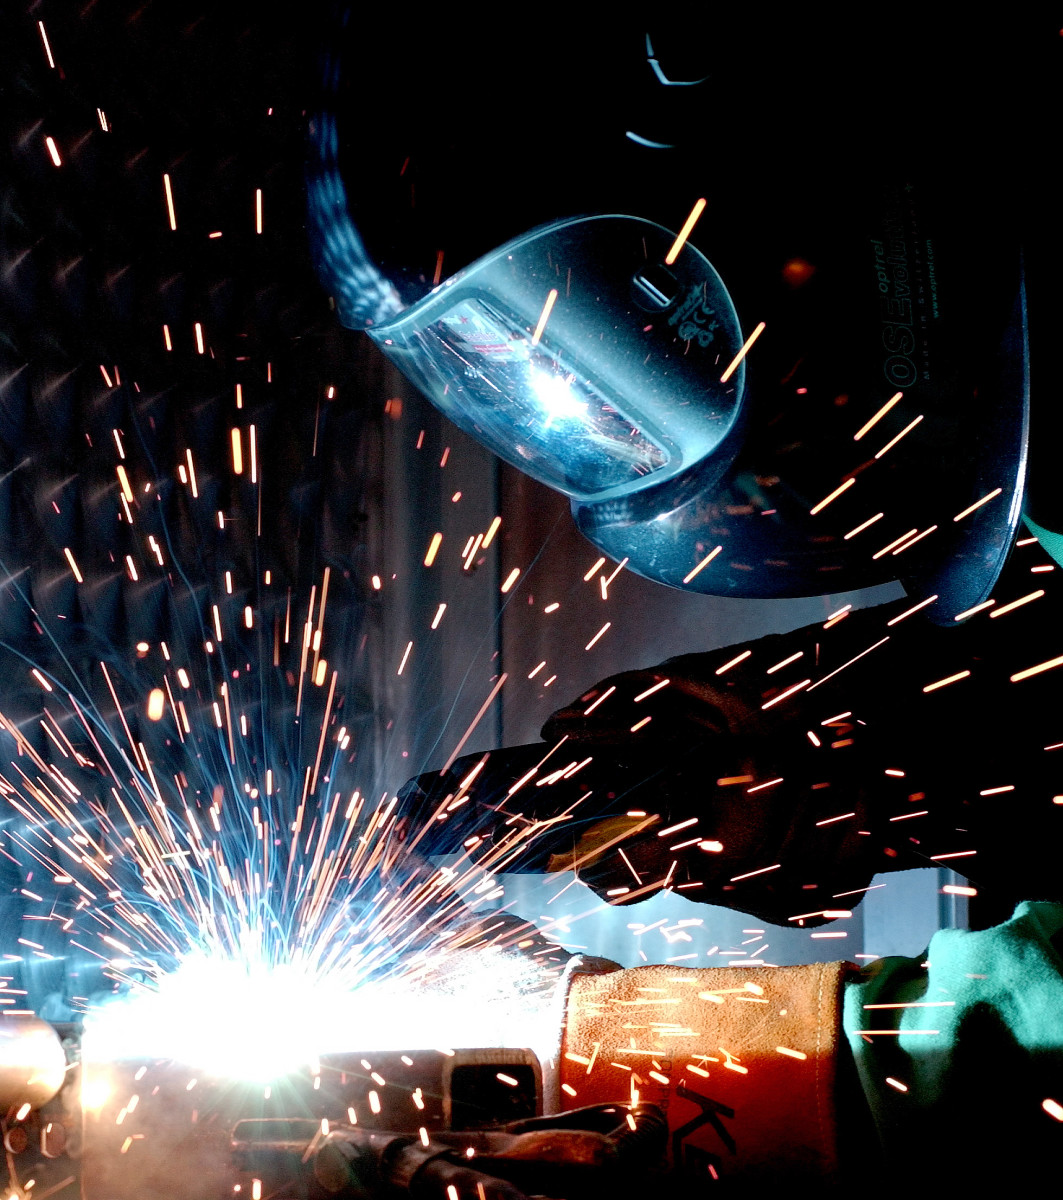 Industry Standards for Galvanized Steel and Pipe